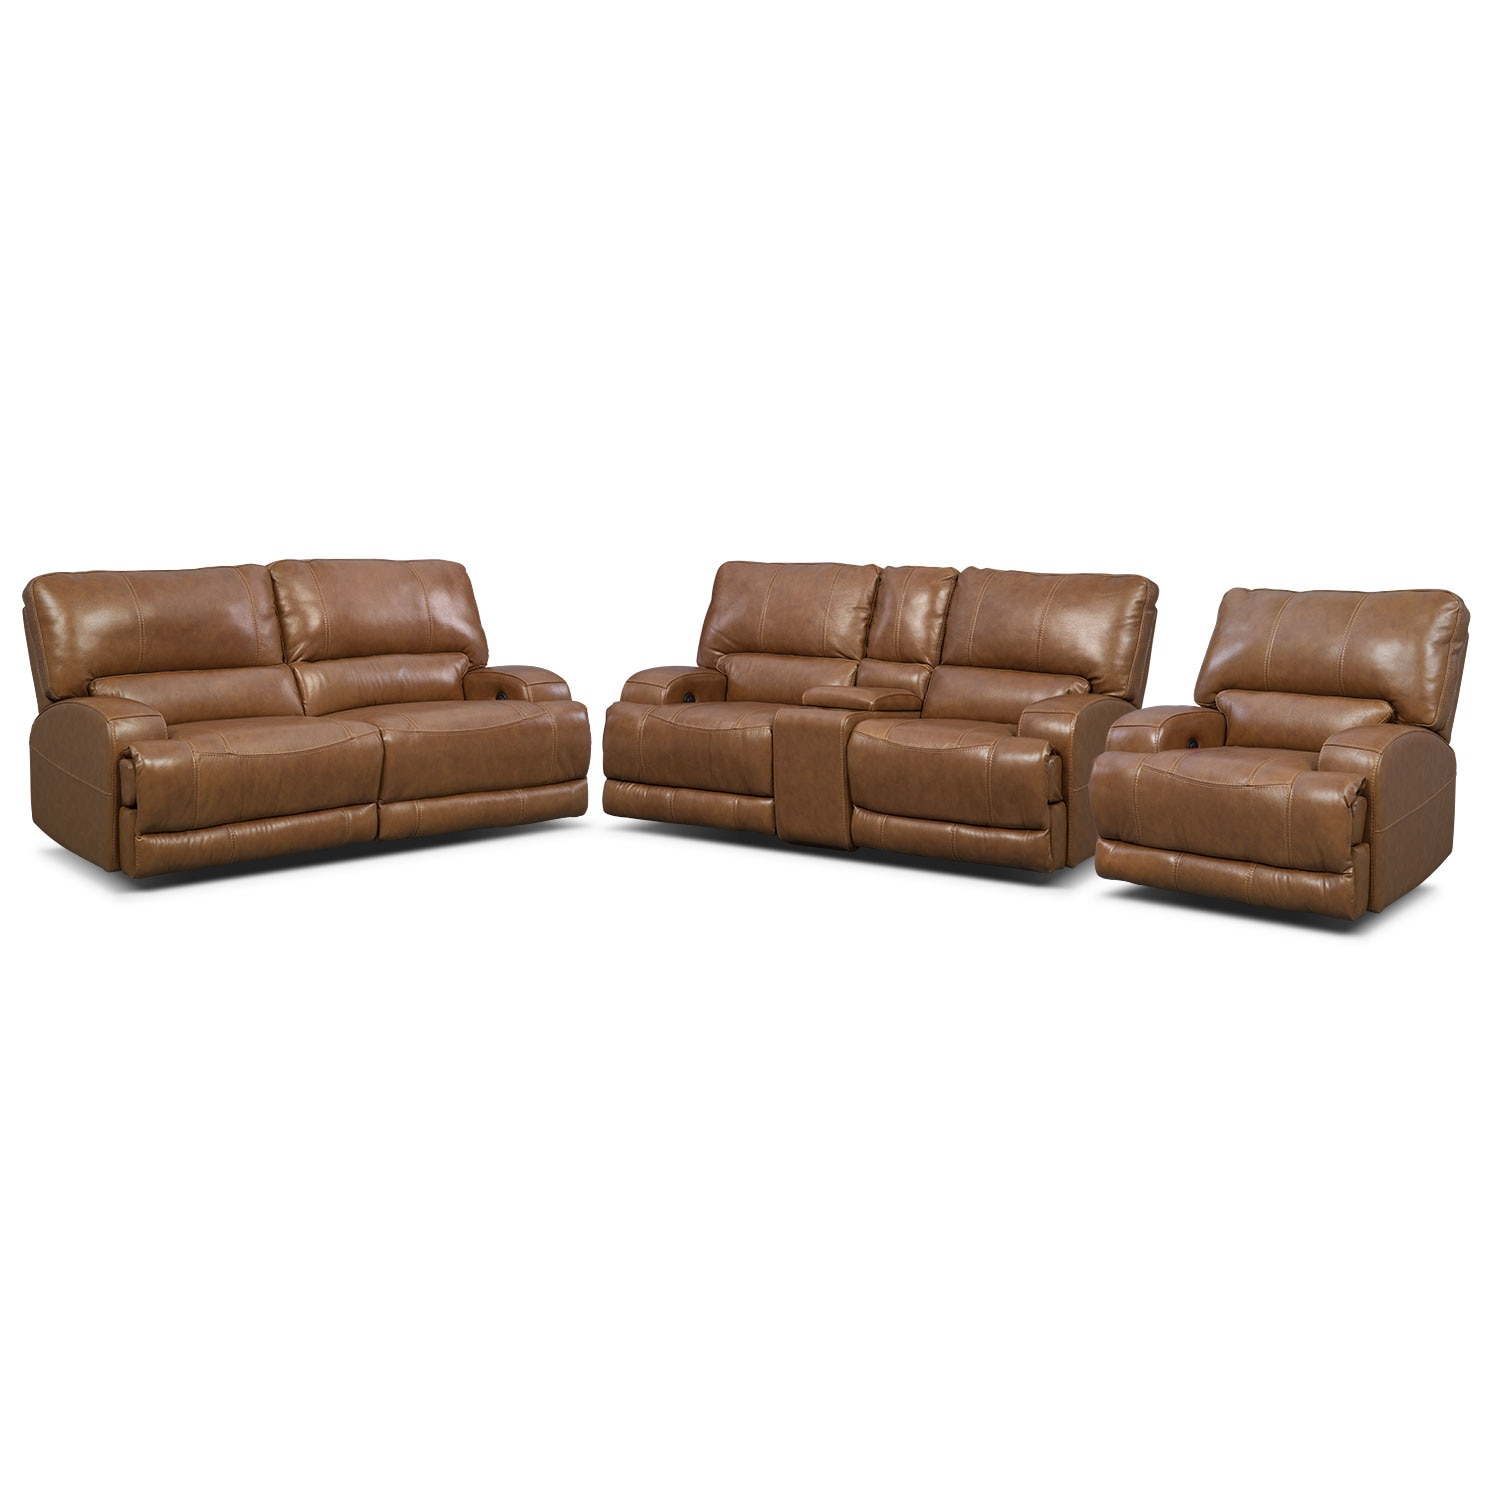 Living Room Furniture - Barton Power Reclining Sofa, Reclining Loveseat and Recliner Set - Camel